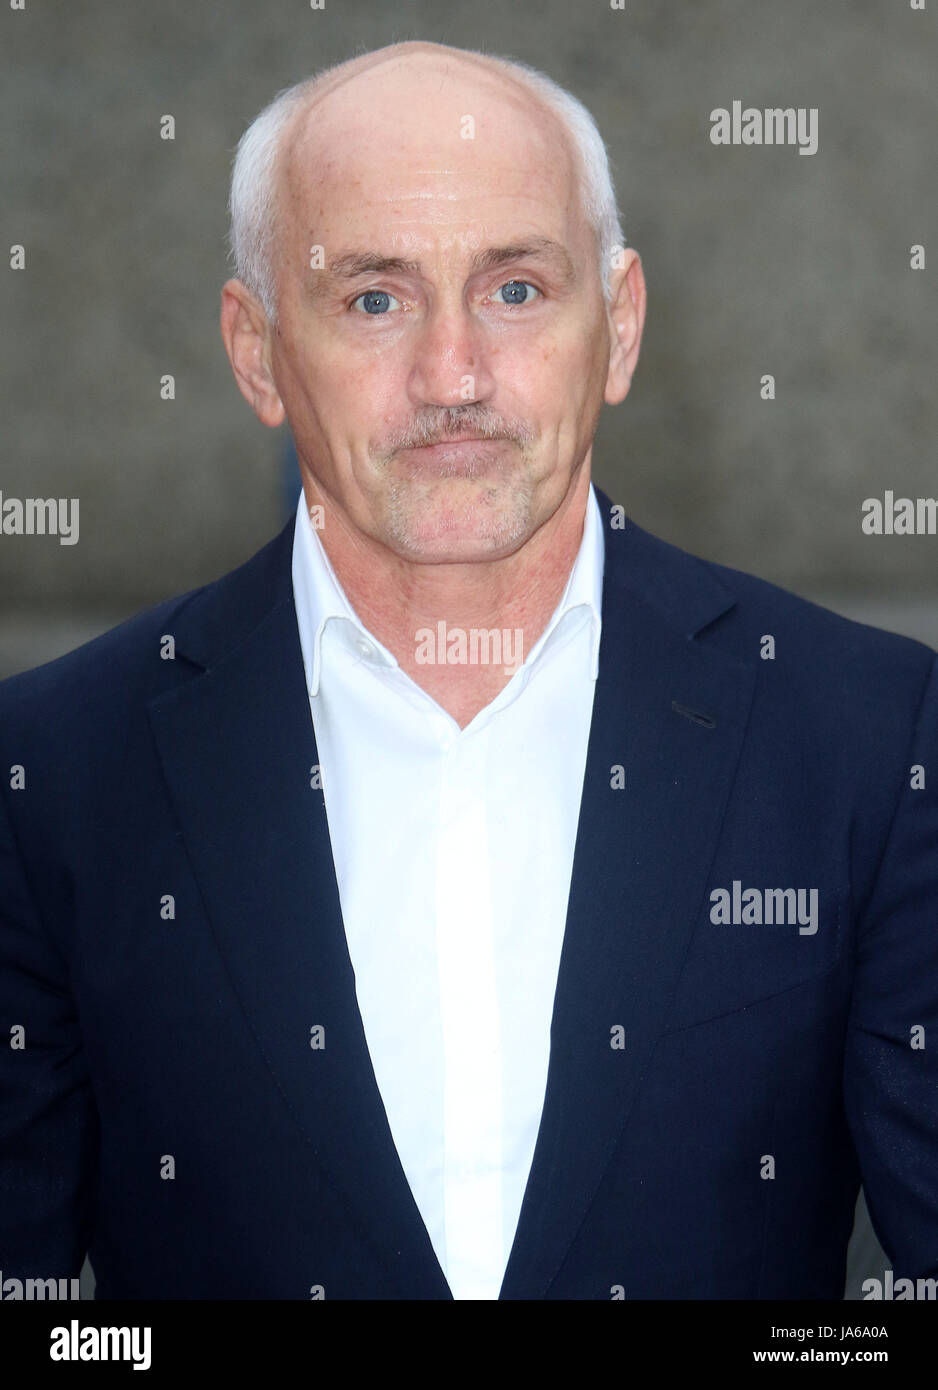 May 08, 2017 - Barry McGuigan attending 'Jawbone' UK Premiere at BFI  Southbank